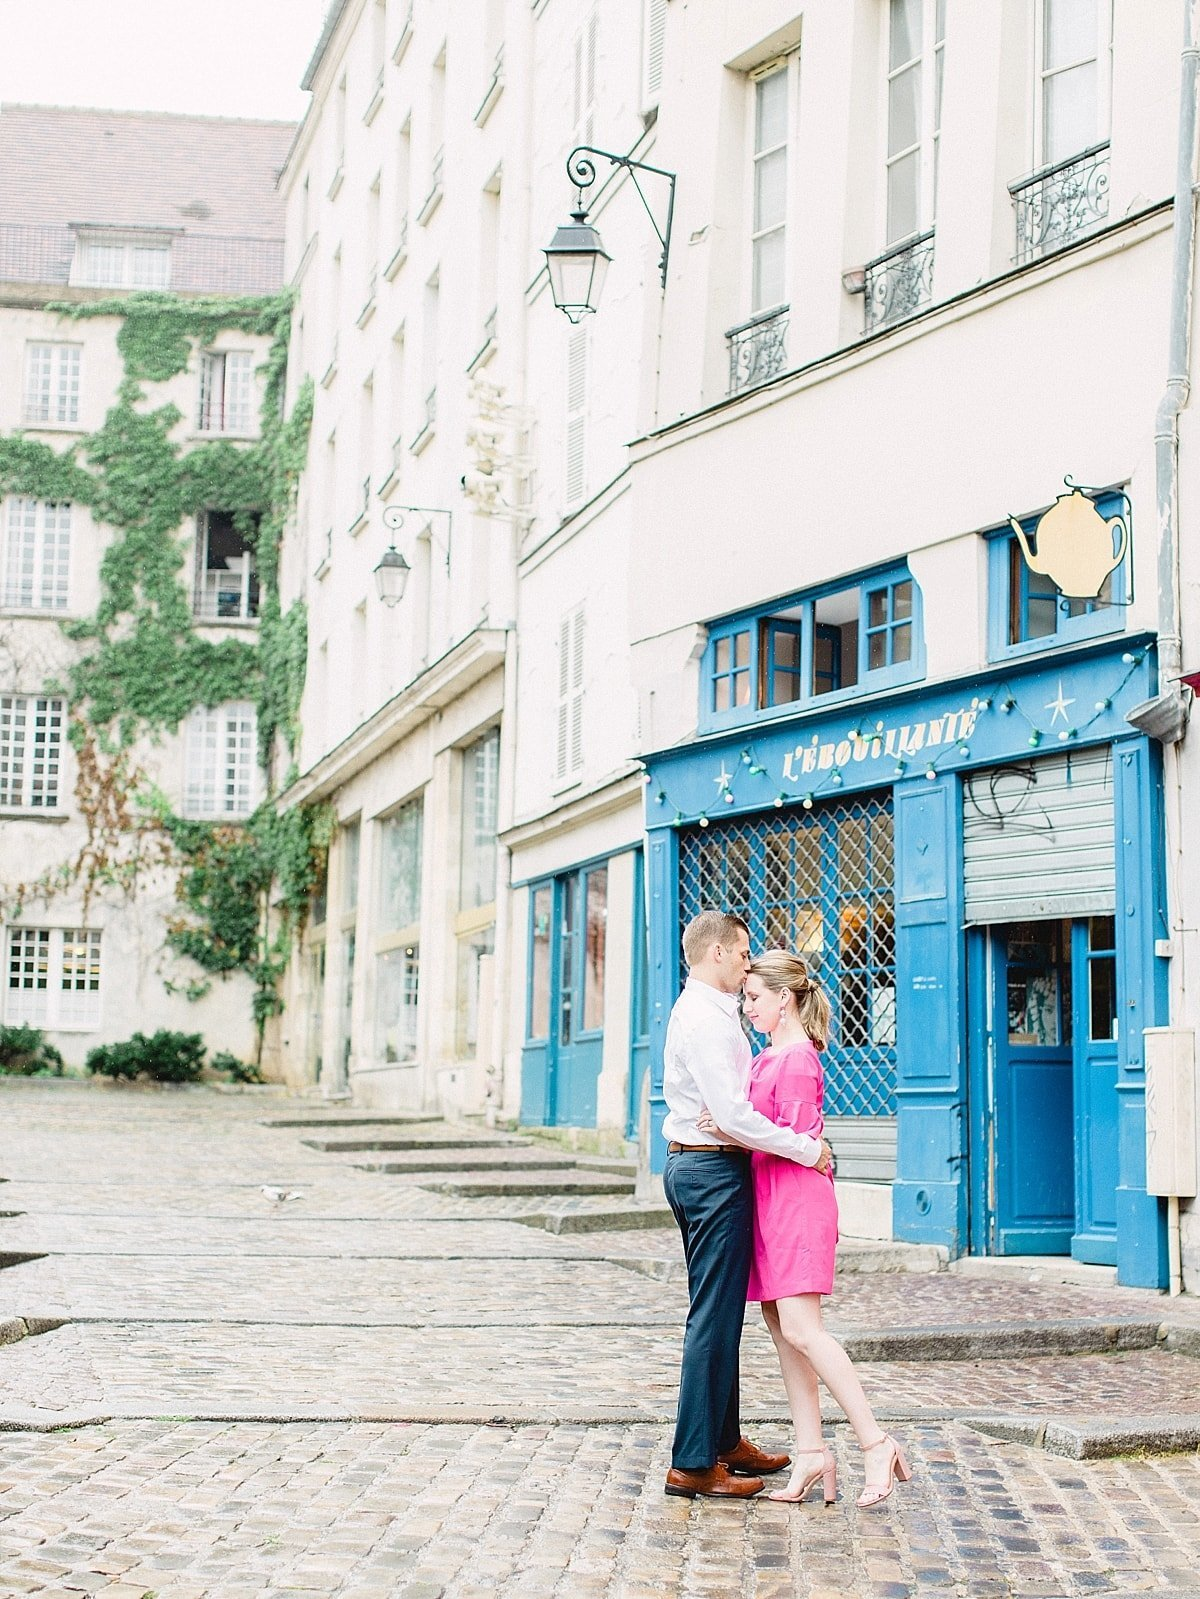 paris-photo-session-anniversary-alicia-yarrish-photography_31